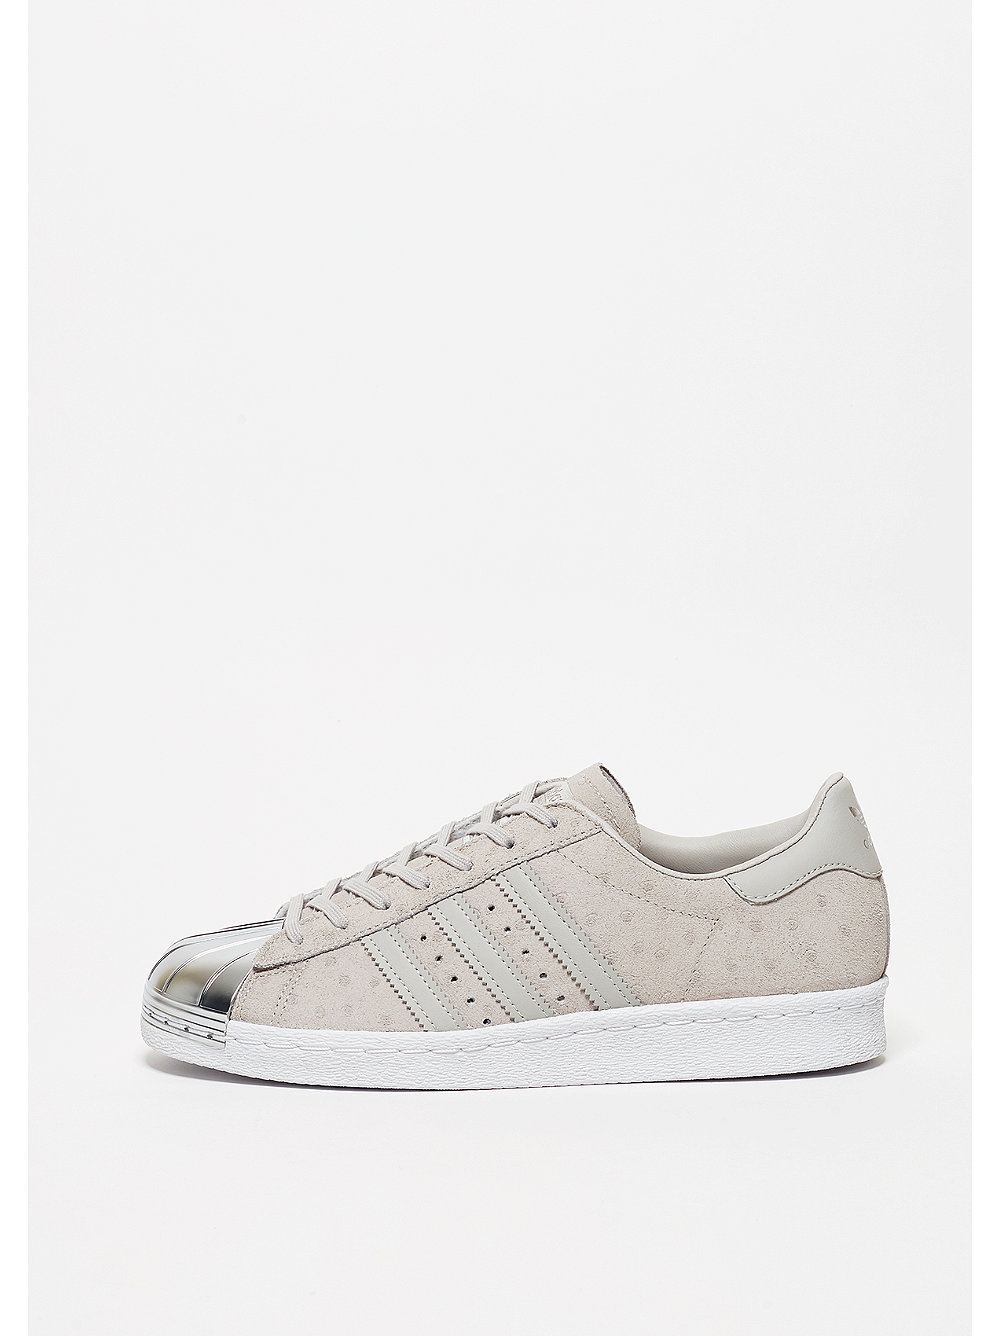 adidas Superstar 80s Metal Toe clear grey-clear grey-metallic silve